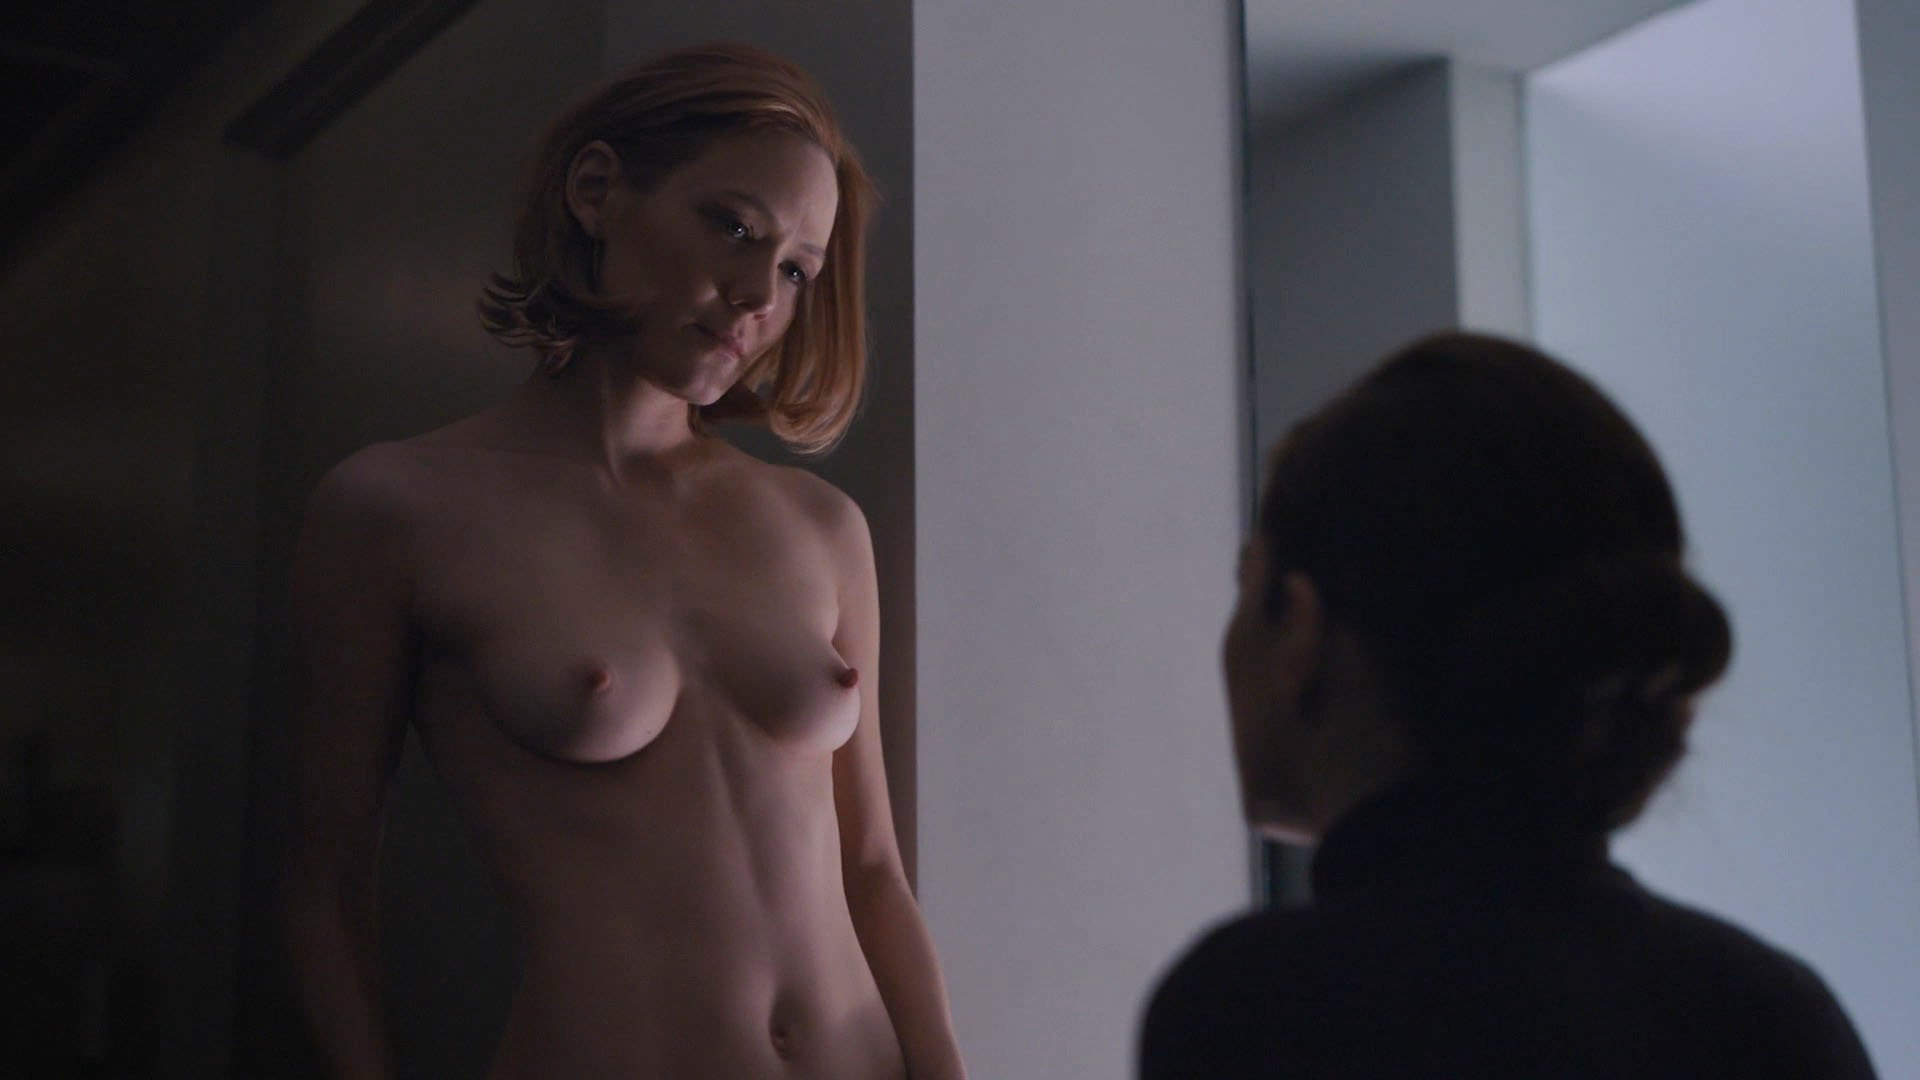 Louisa Krause nude, Anna Friel nude - The Girlfriend Experience s02e03 (2017)